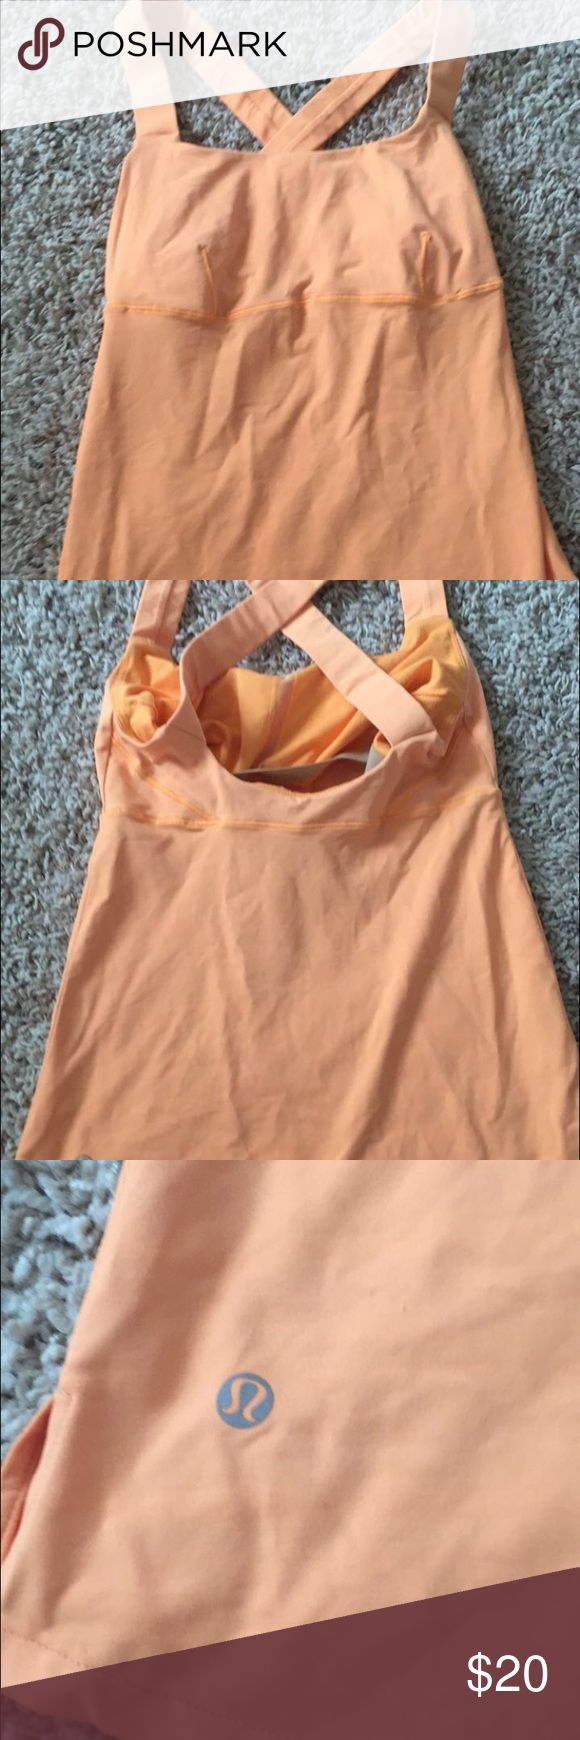 Lululemon cross back yoga running tank top 4 Lululemin coral running yoga workout top in great condition. No holes no stains size 4 lululemon athletica Tops Tank Tops